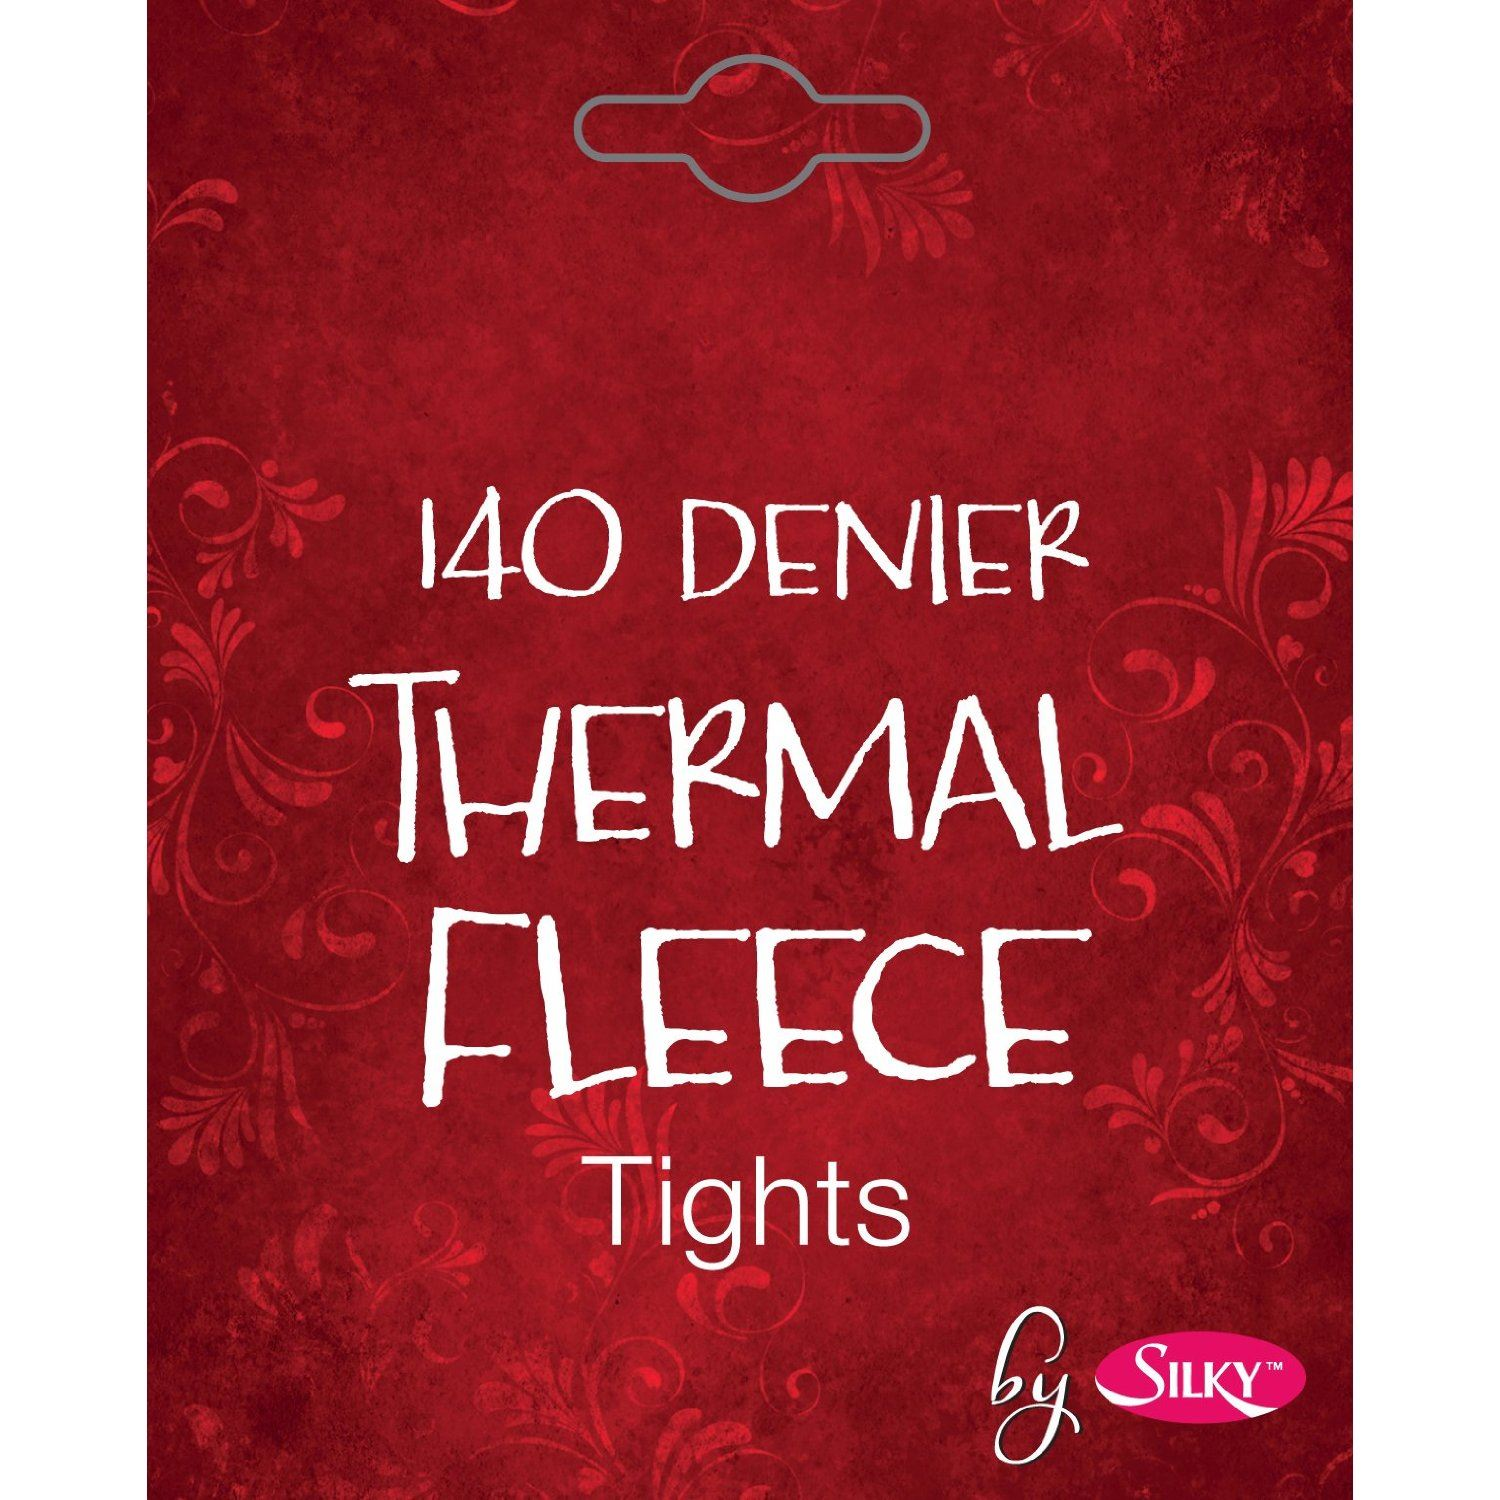 Ladies-Silky-140-Denier-Fleece-Lined-Tights-Thick-Warm-Fleece-Opaque-Pantyhose